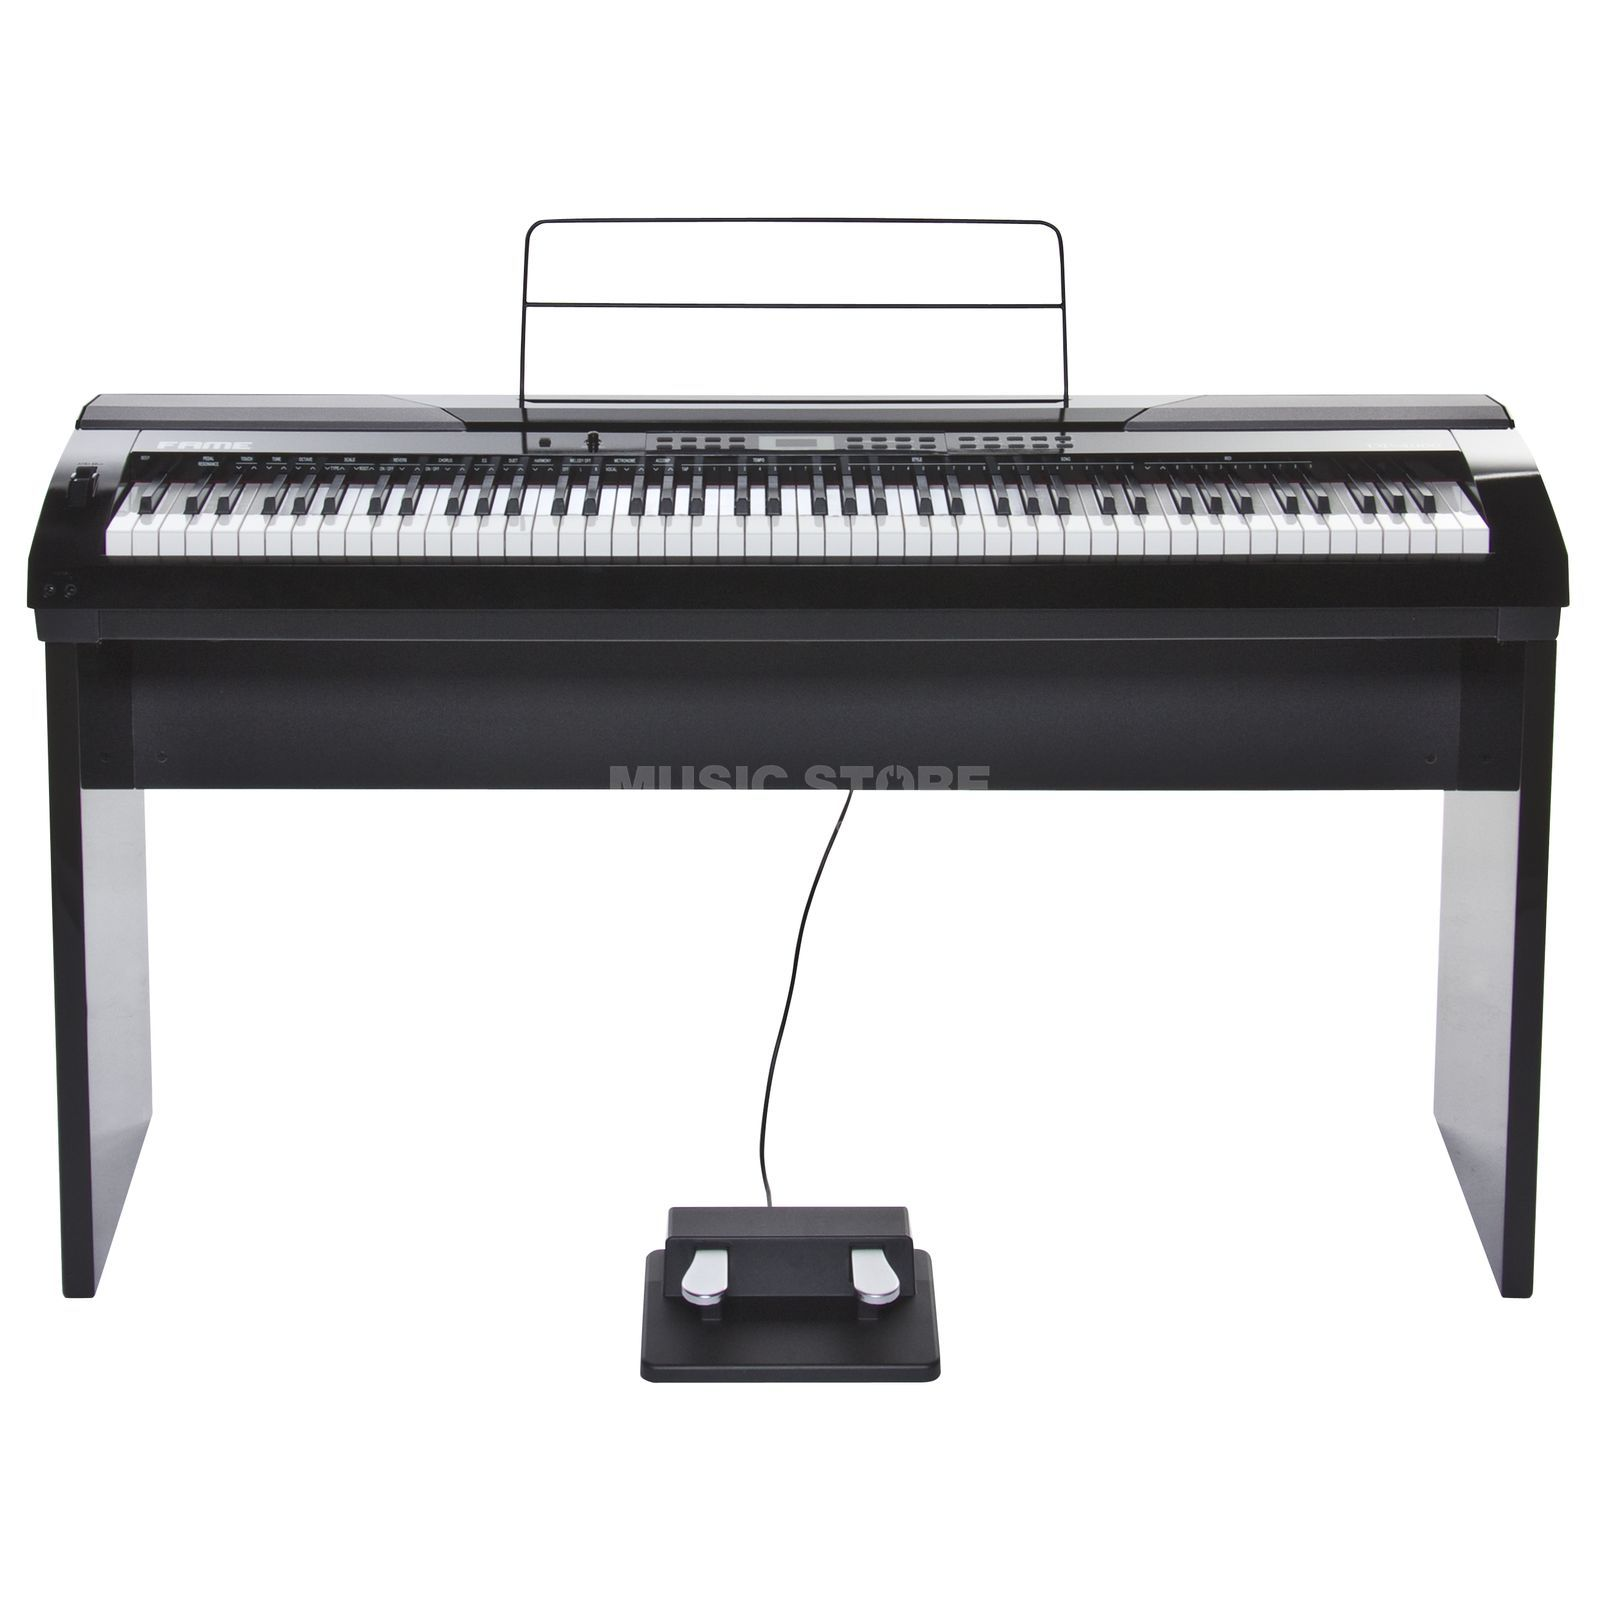 Fame DP-4000 WH Digital-Piano Set Matte White incl. Stand Produktbillede